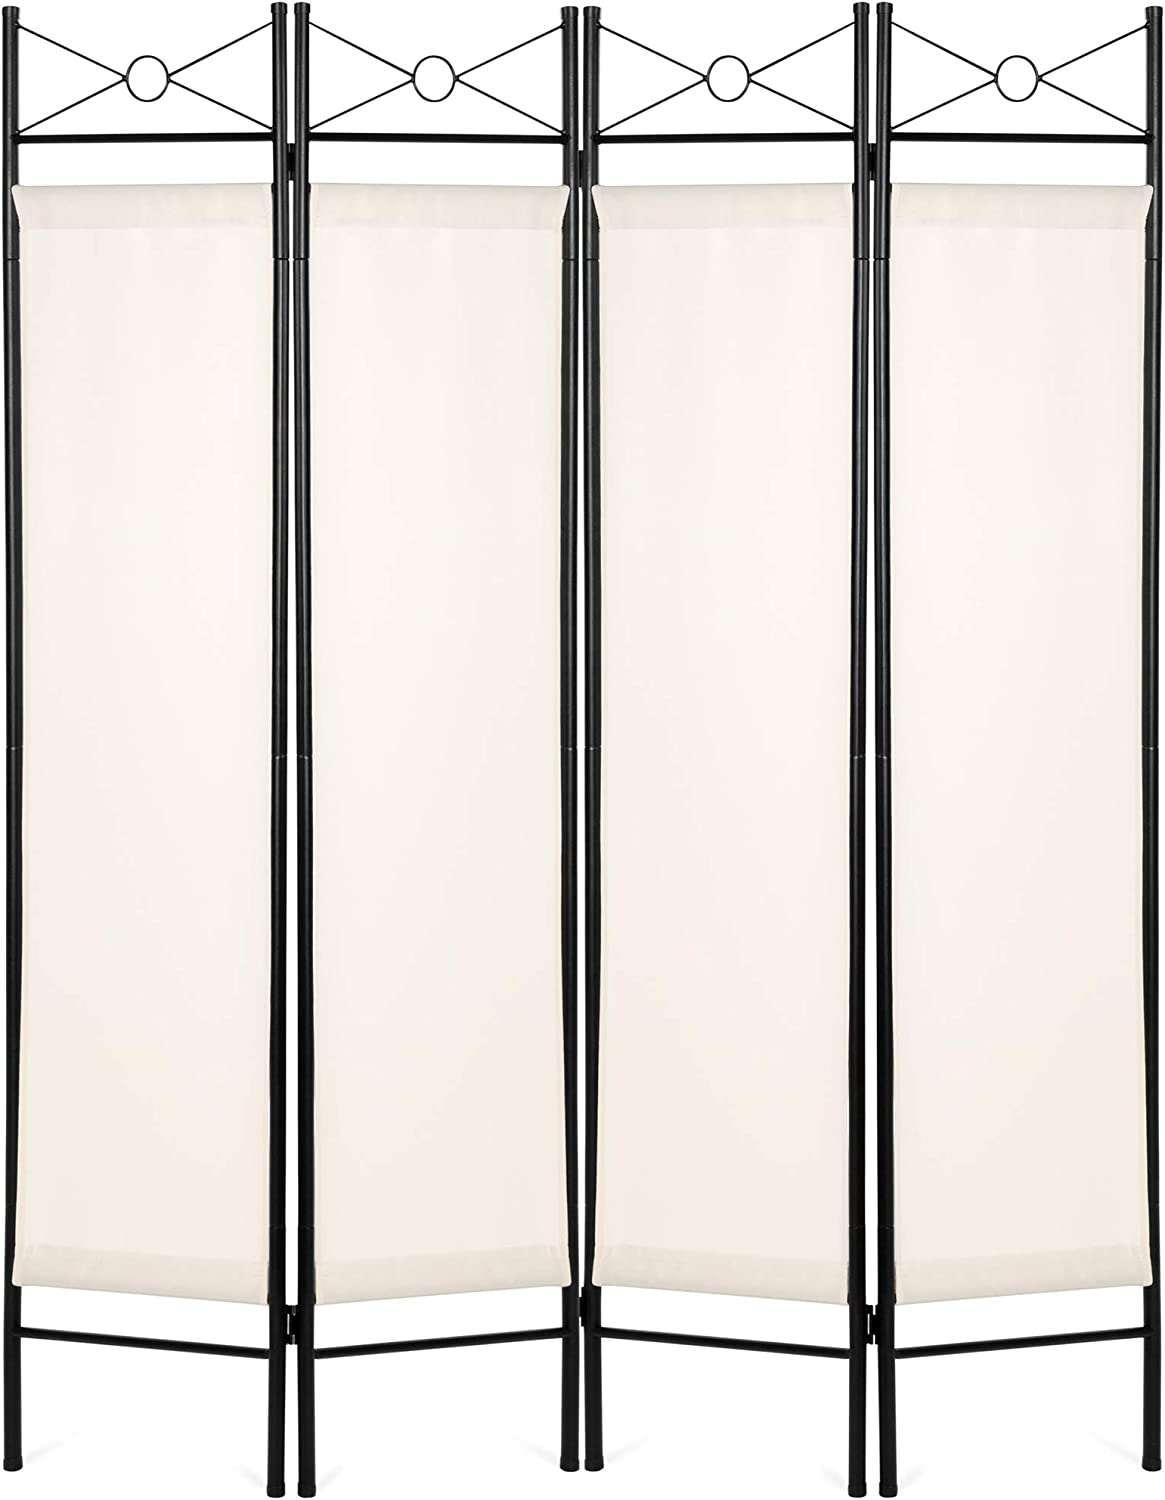 Best Choice Products 6ft 4-Panel Folding Privacy Screen Room Divider Multipurpose Decoration Accent for Living Room, Bedroom, Bathroom, Office, Salon, Shade w/Steel Frame, Lightweight Design - White